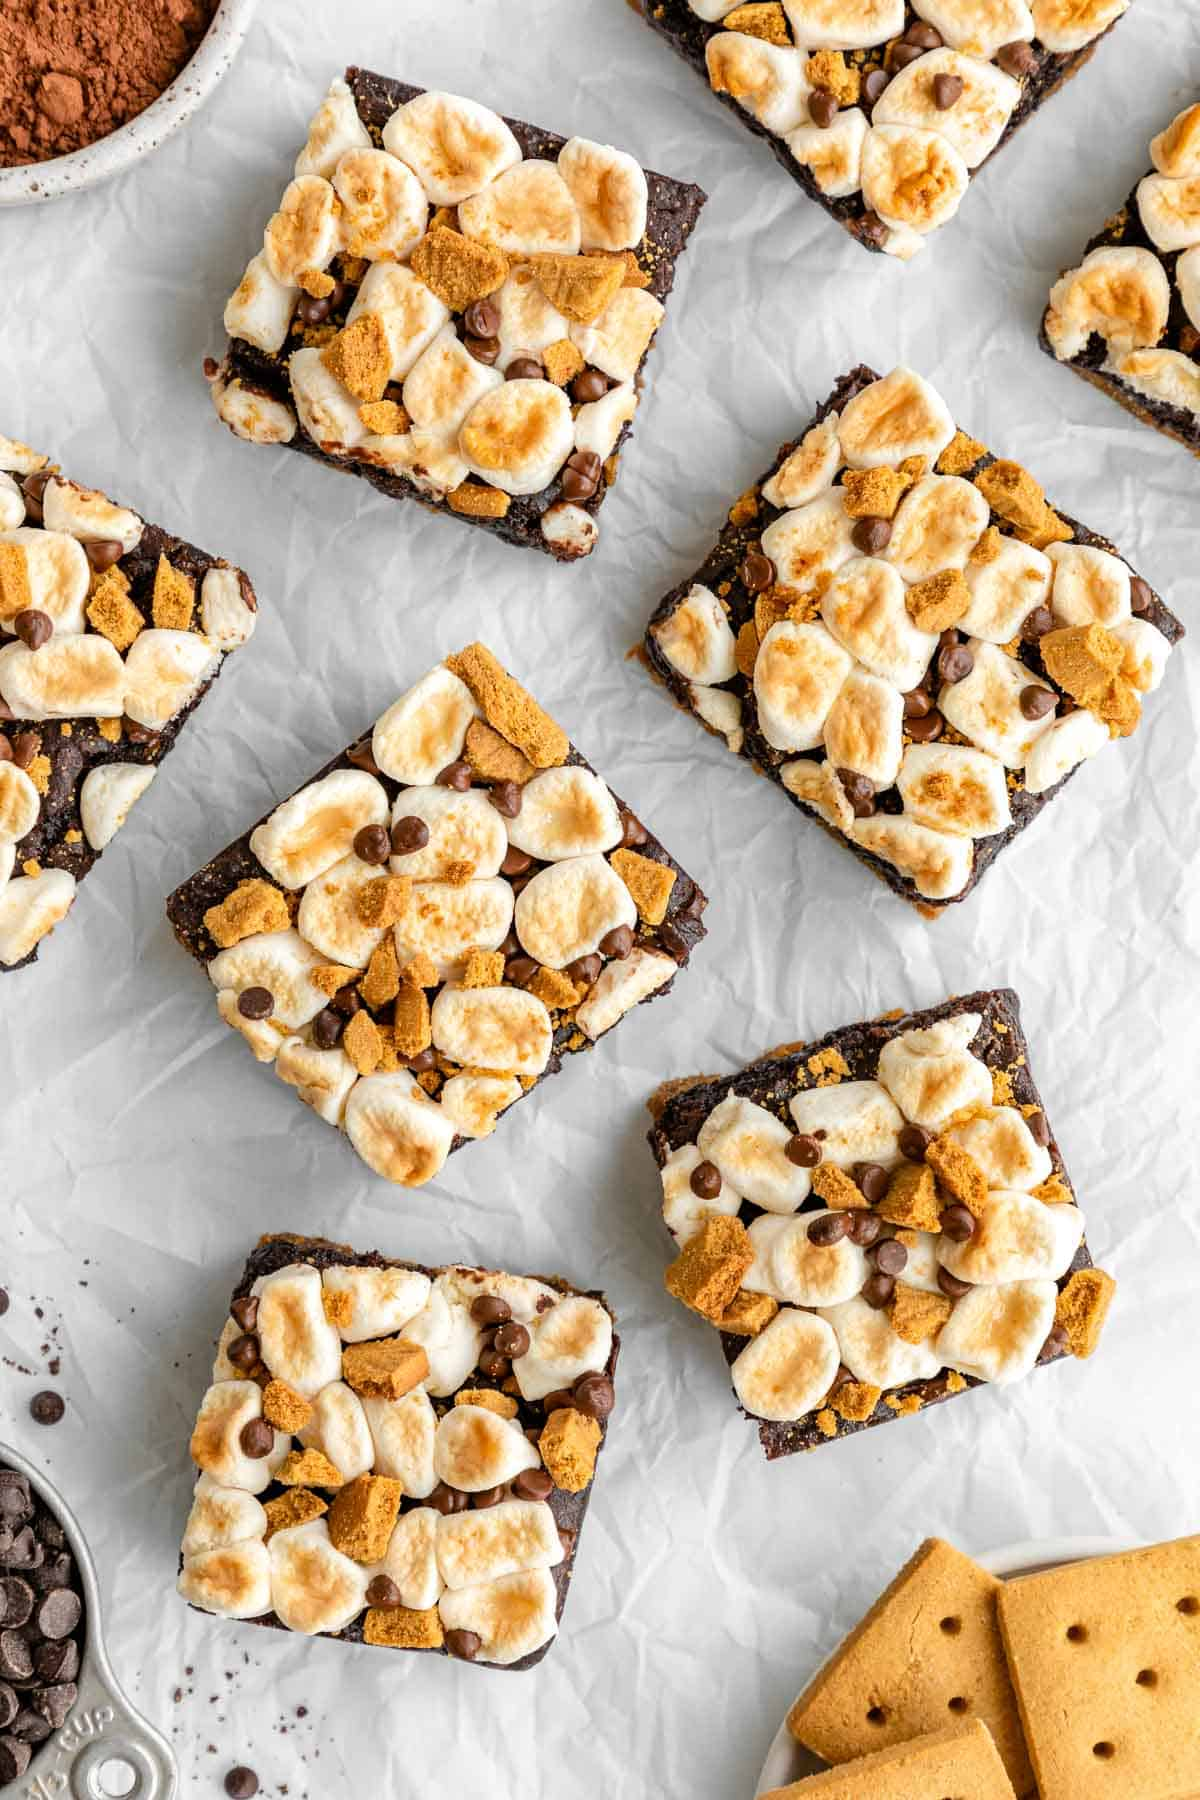 vegan s'mores brownies on white parchment paper